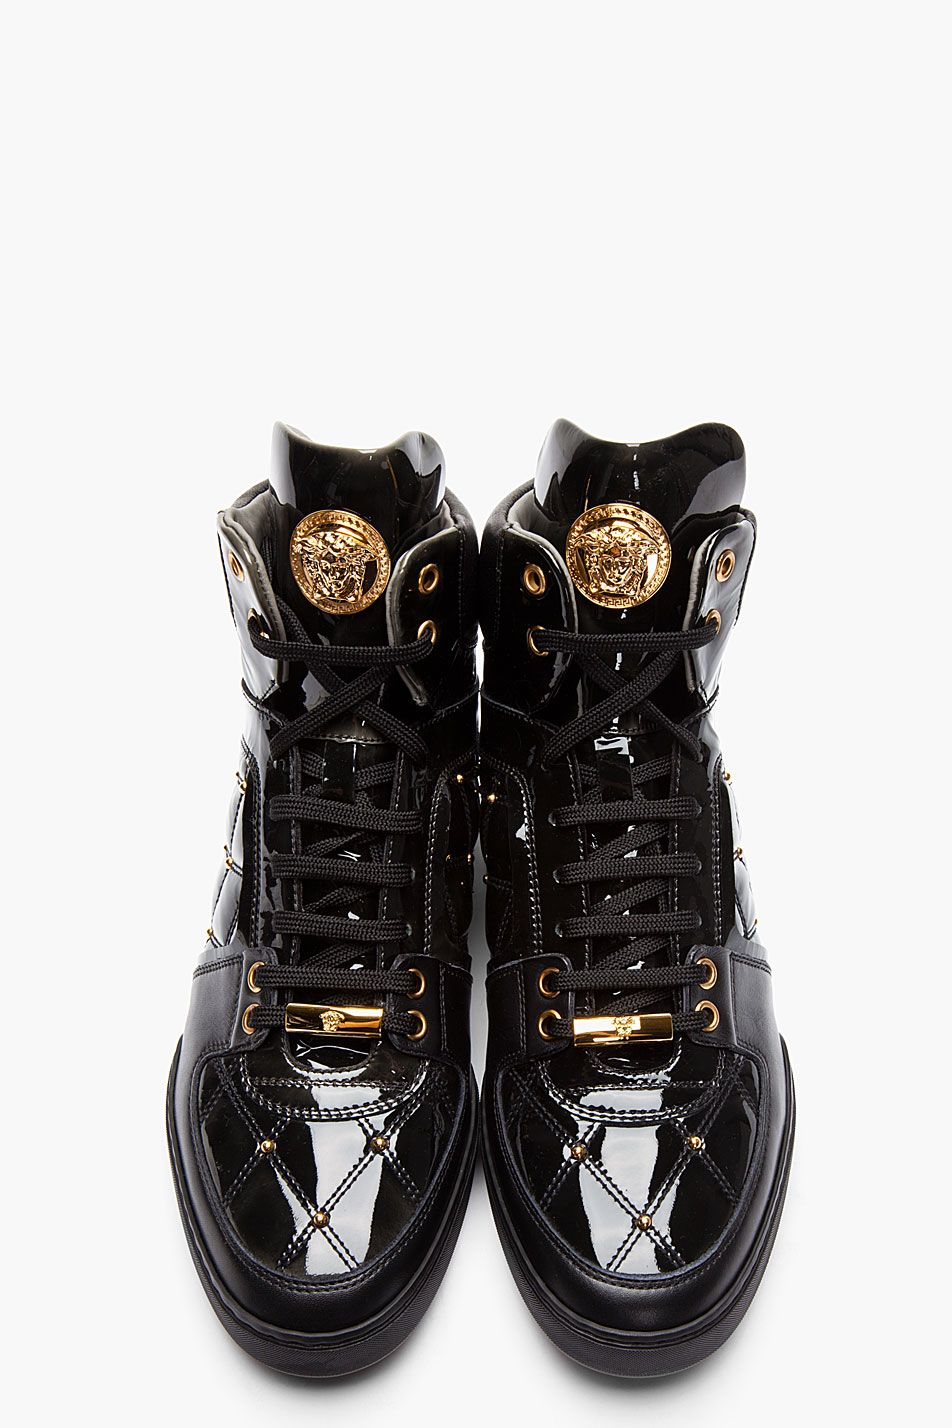 64925036737 versace | Shoes! | Shoes, Leather sneakers, Mens fashion:__cat__